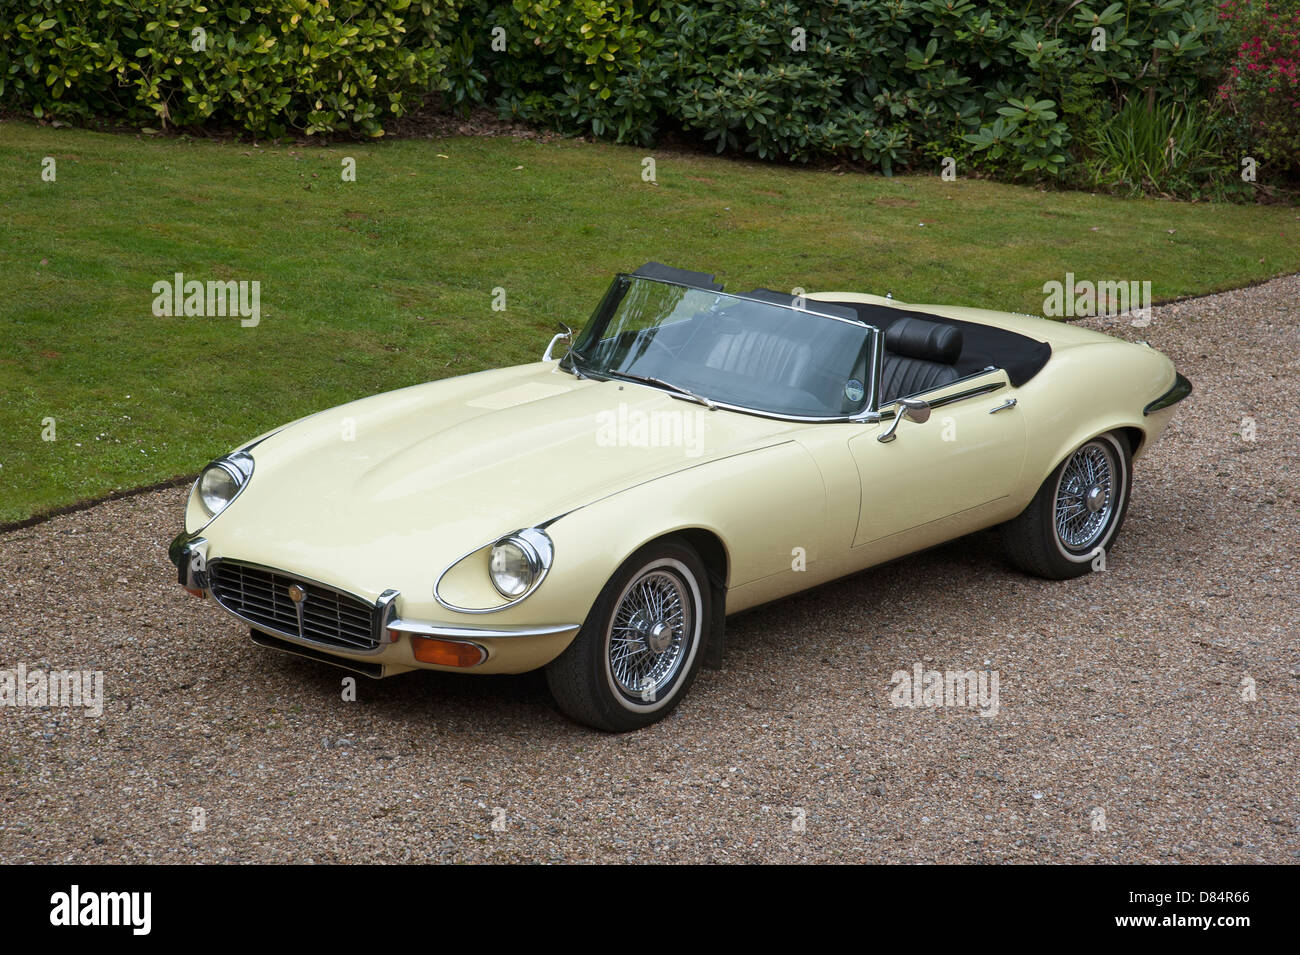 E Type Jaguar V12 Sports Car 1970u0027s Vintage Classic Cars